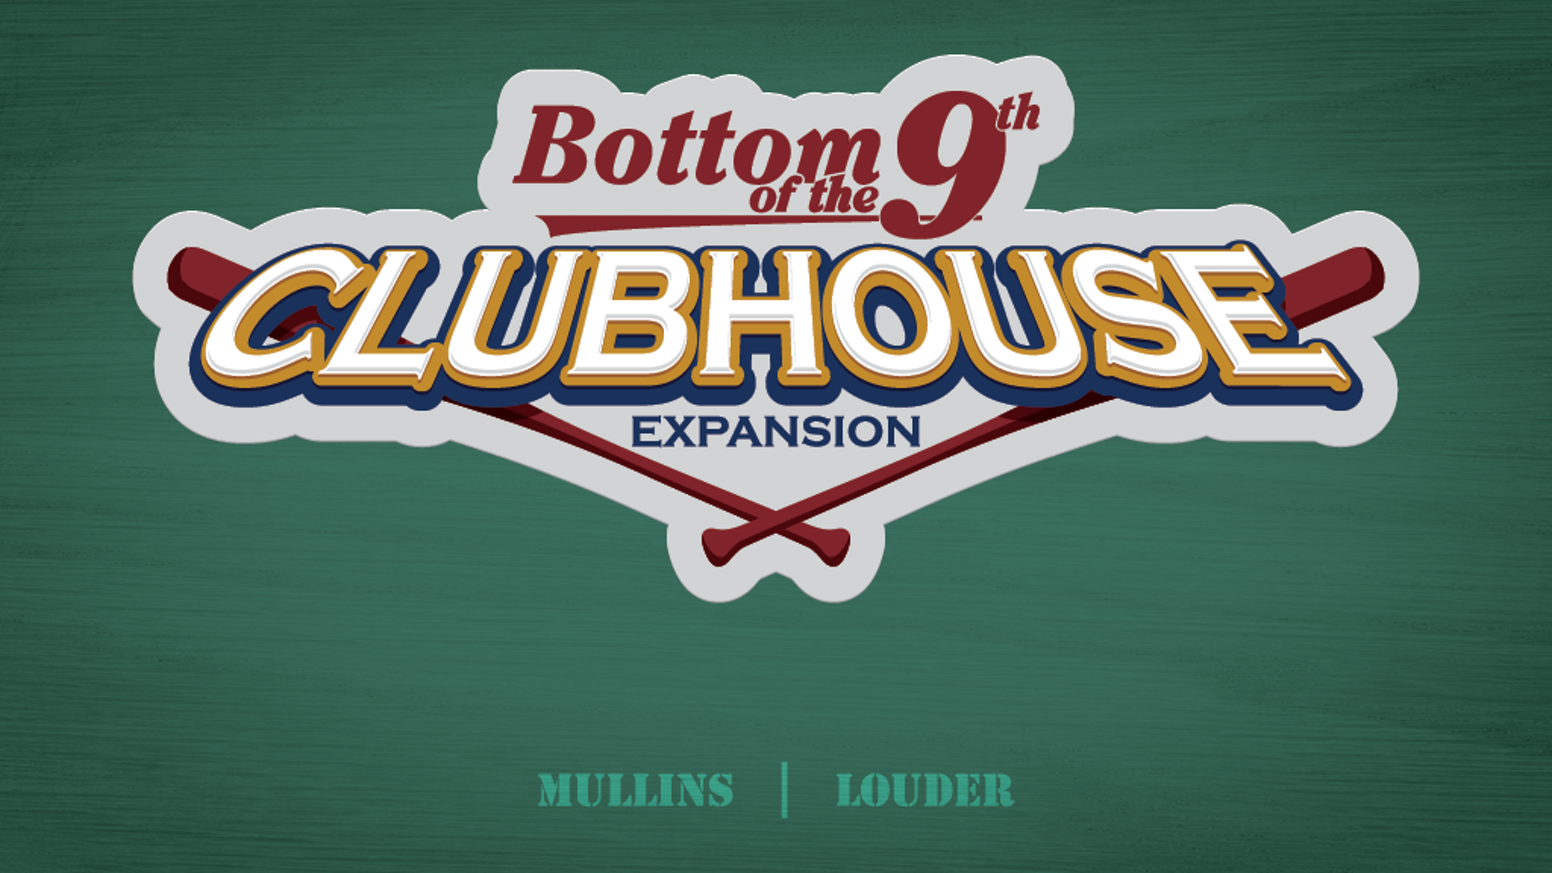 Clubhouse Is The First Big Box Expansion For Bottom Of 9th Popular